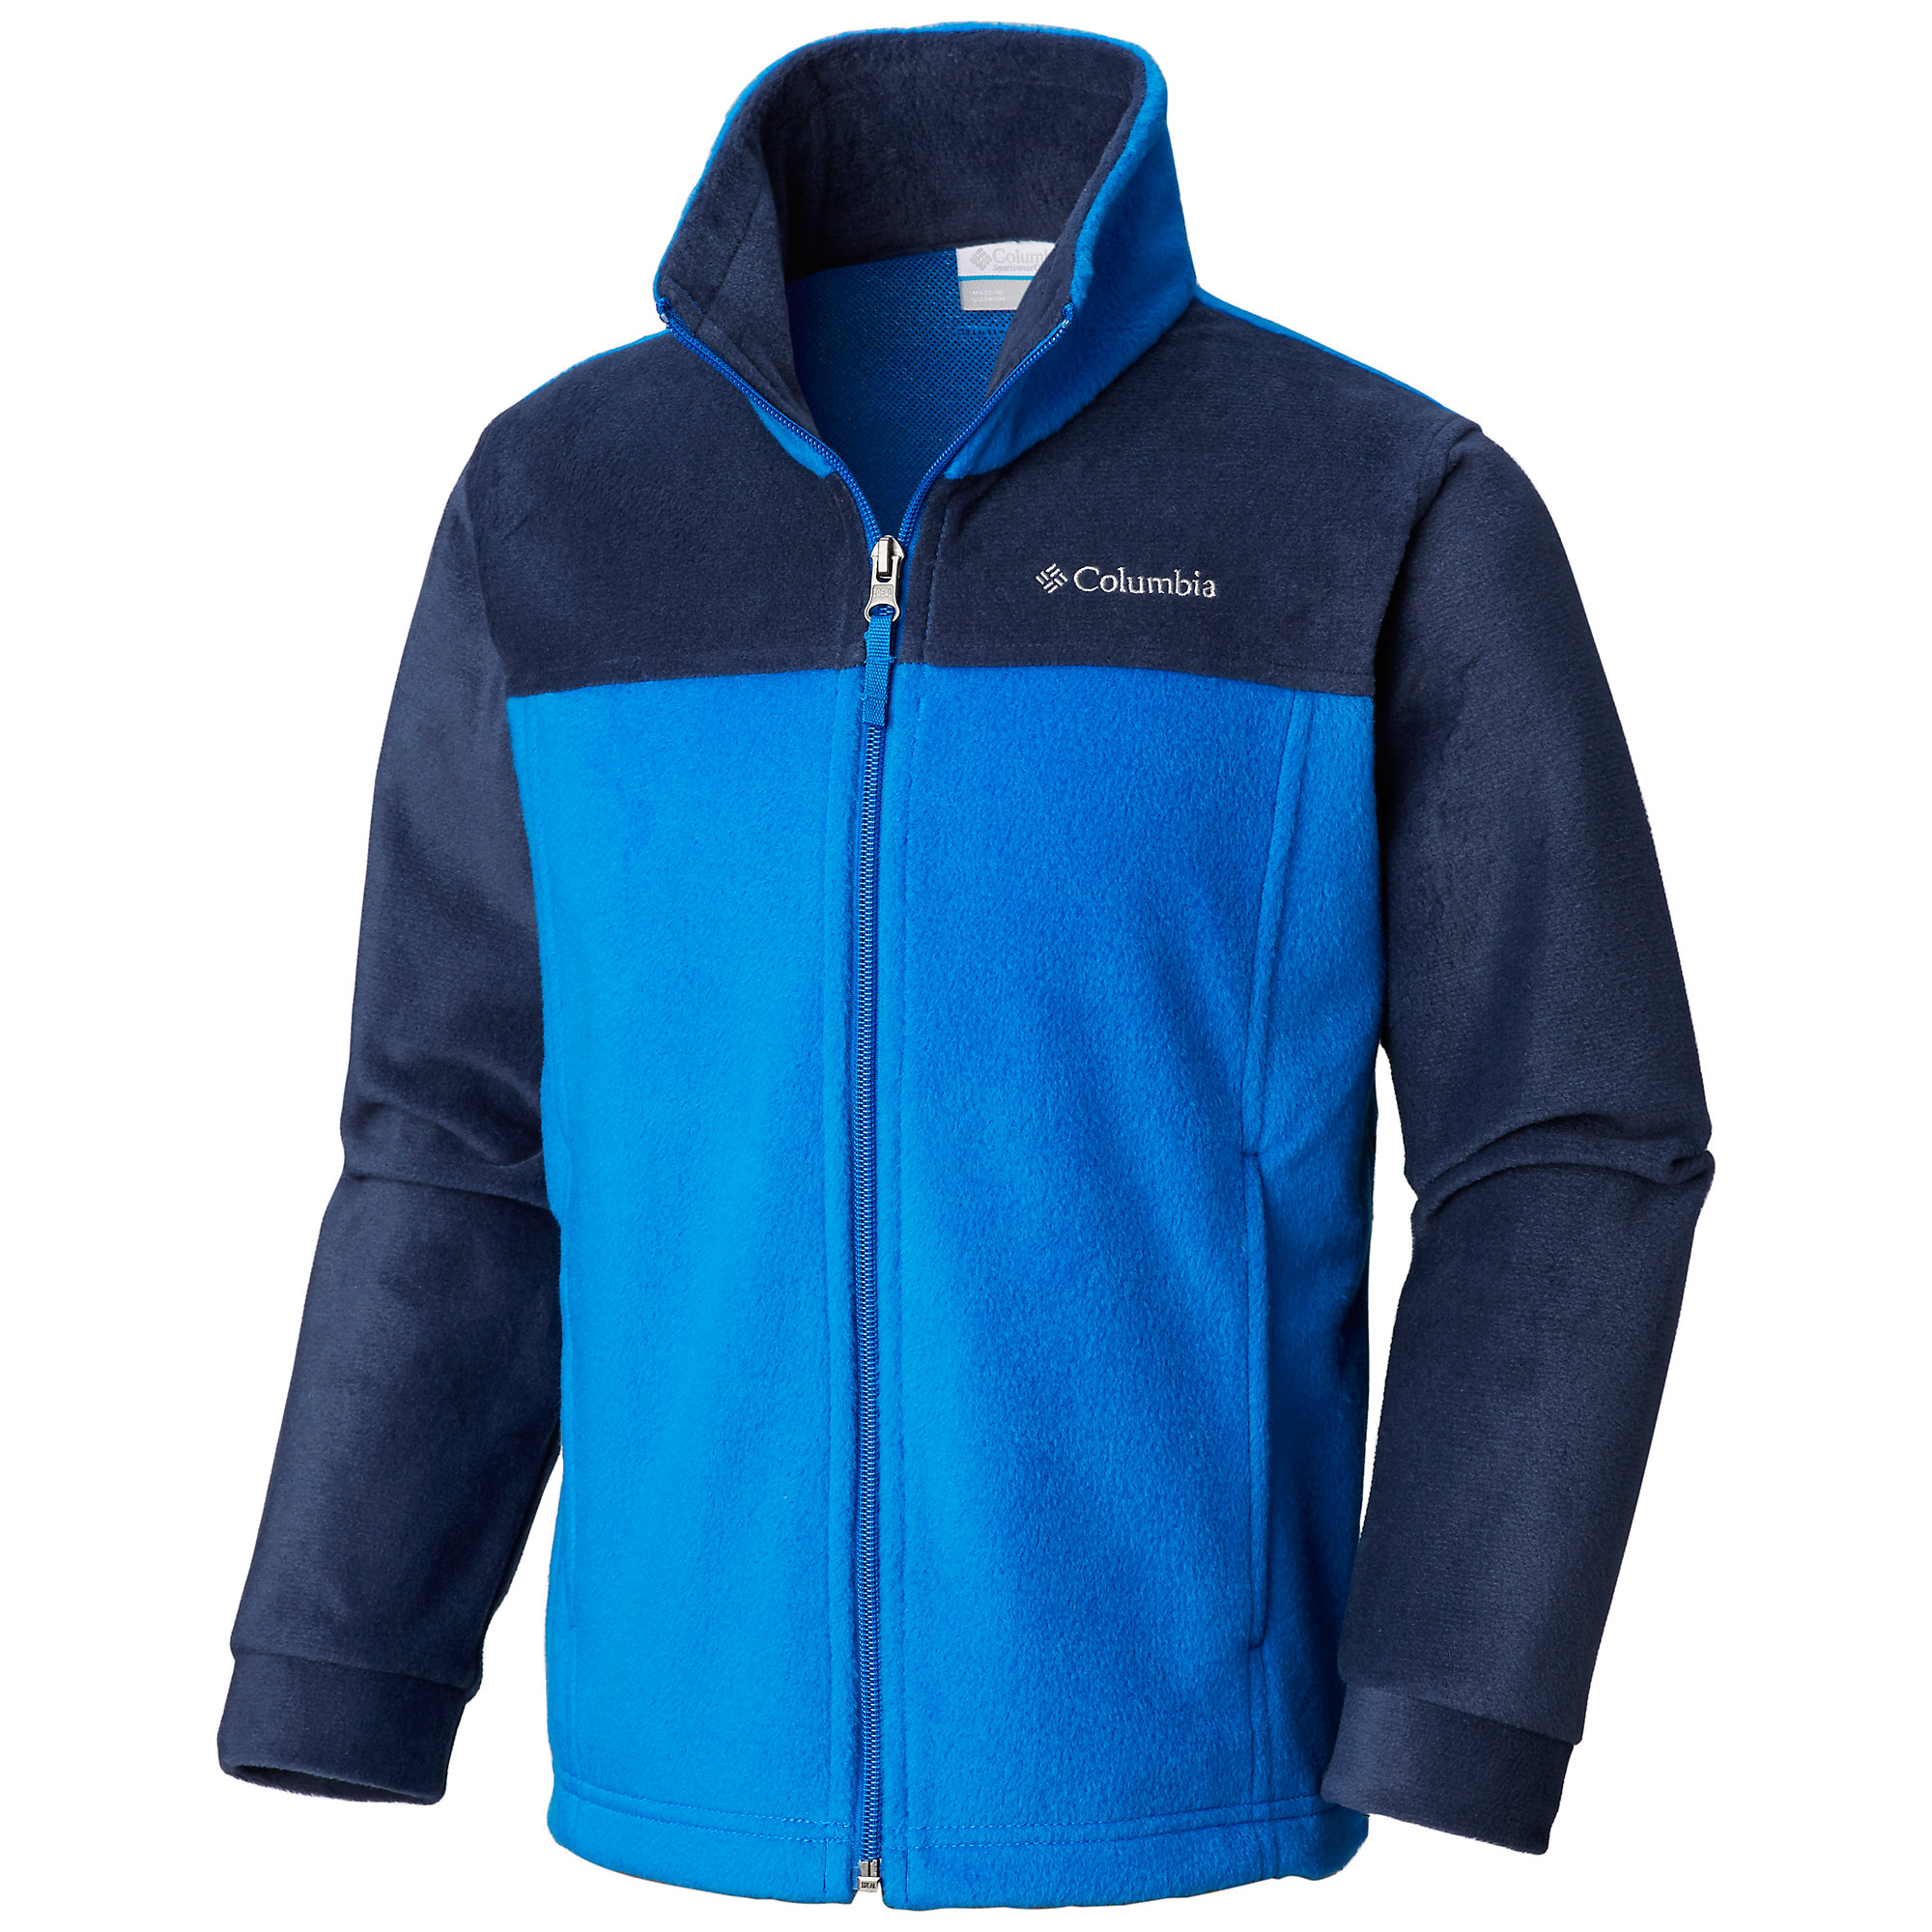 photo: Columbia Boys' Dotswarm Full Zip Jacket